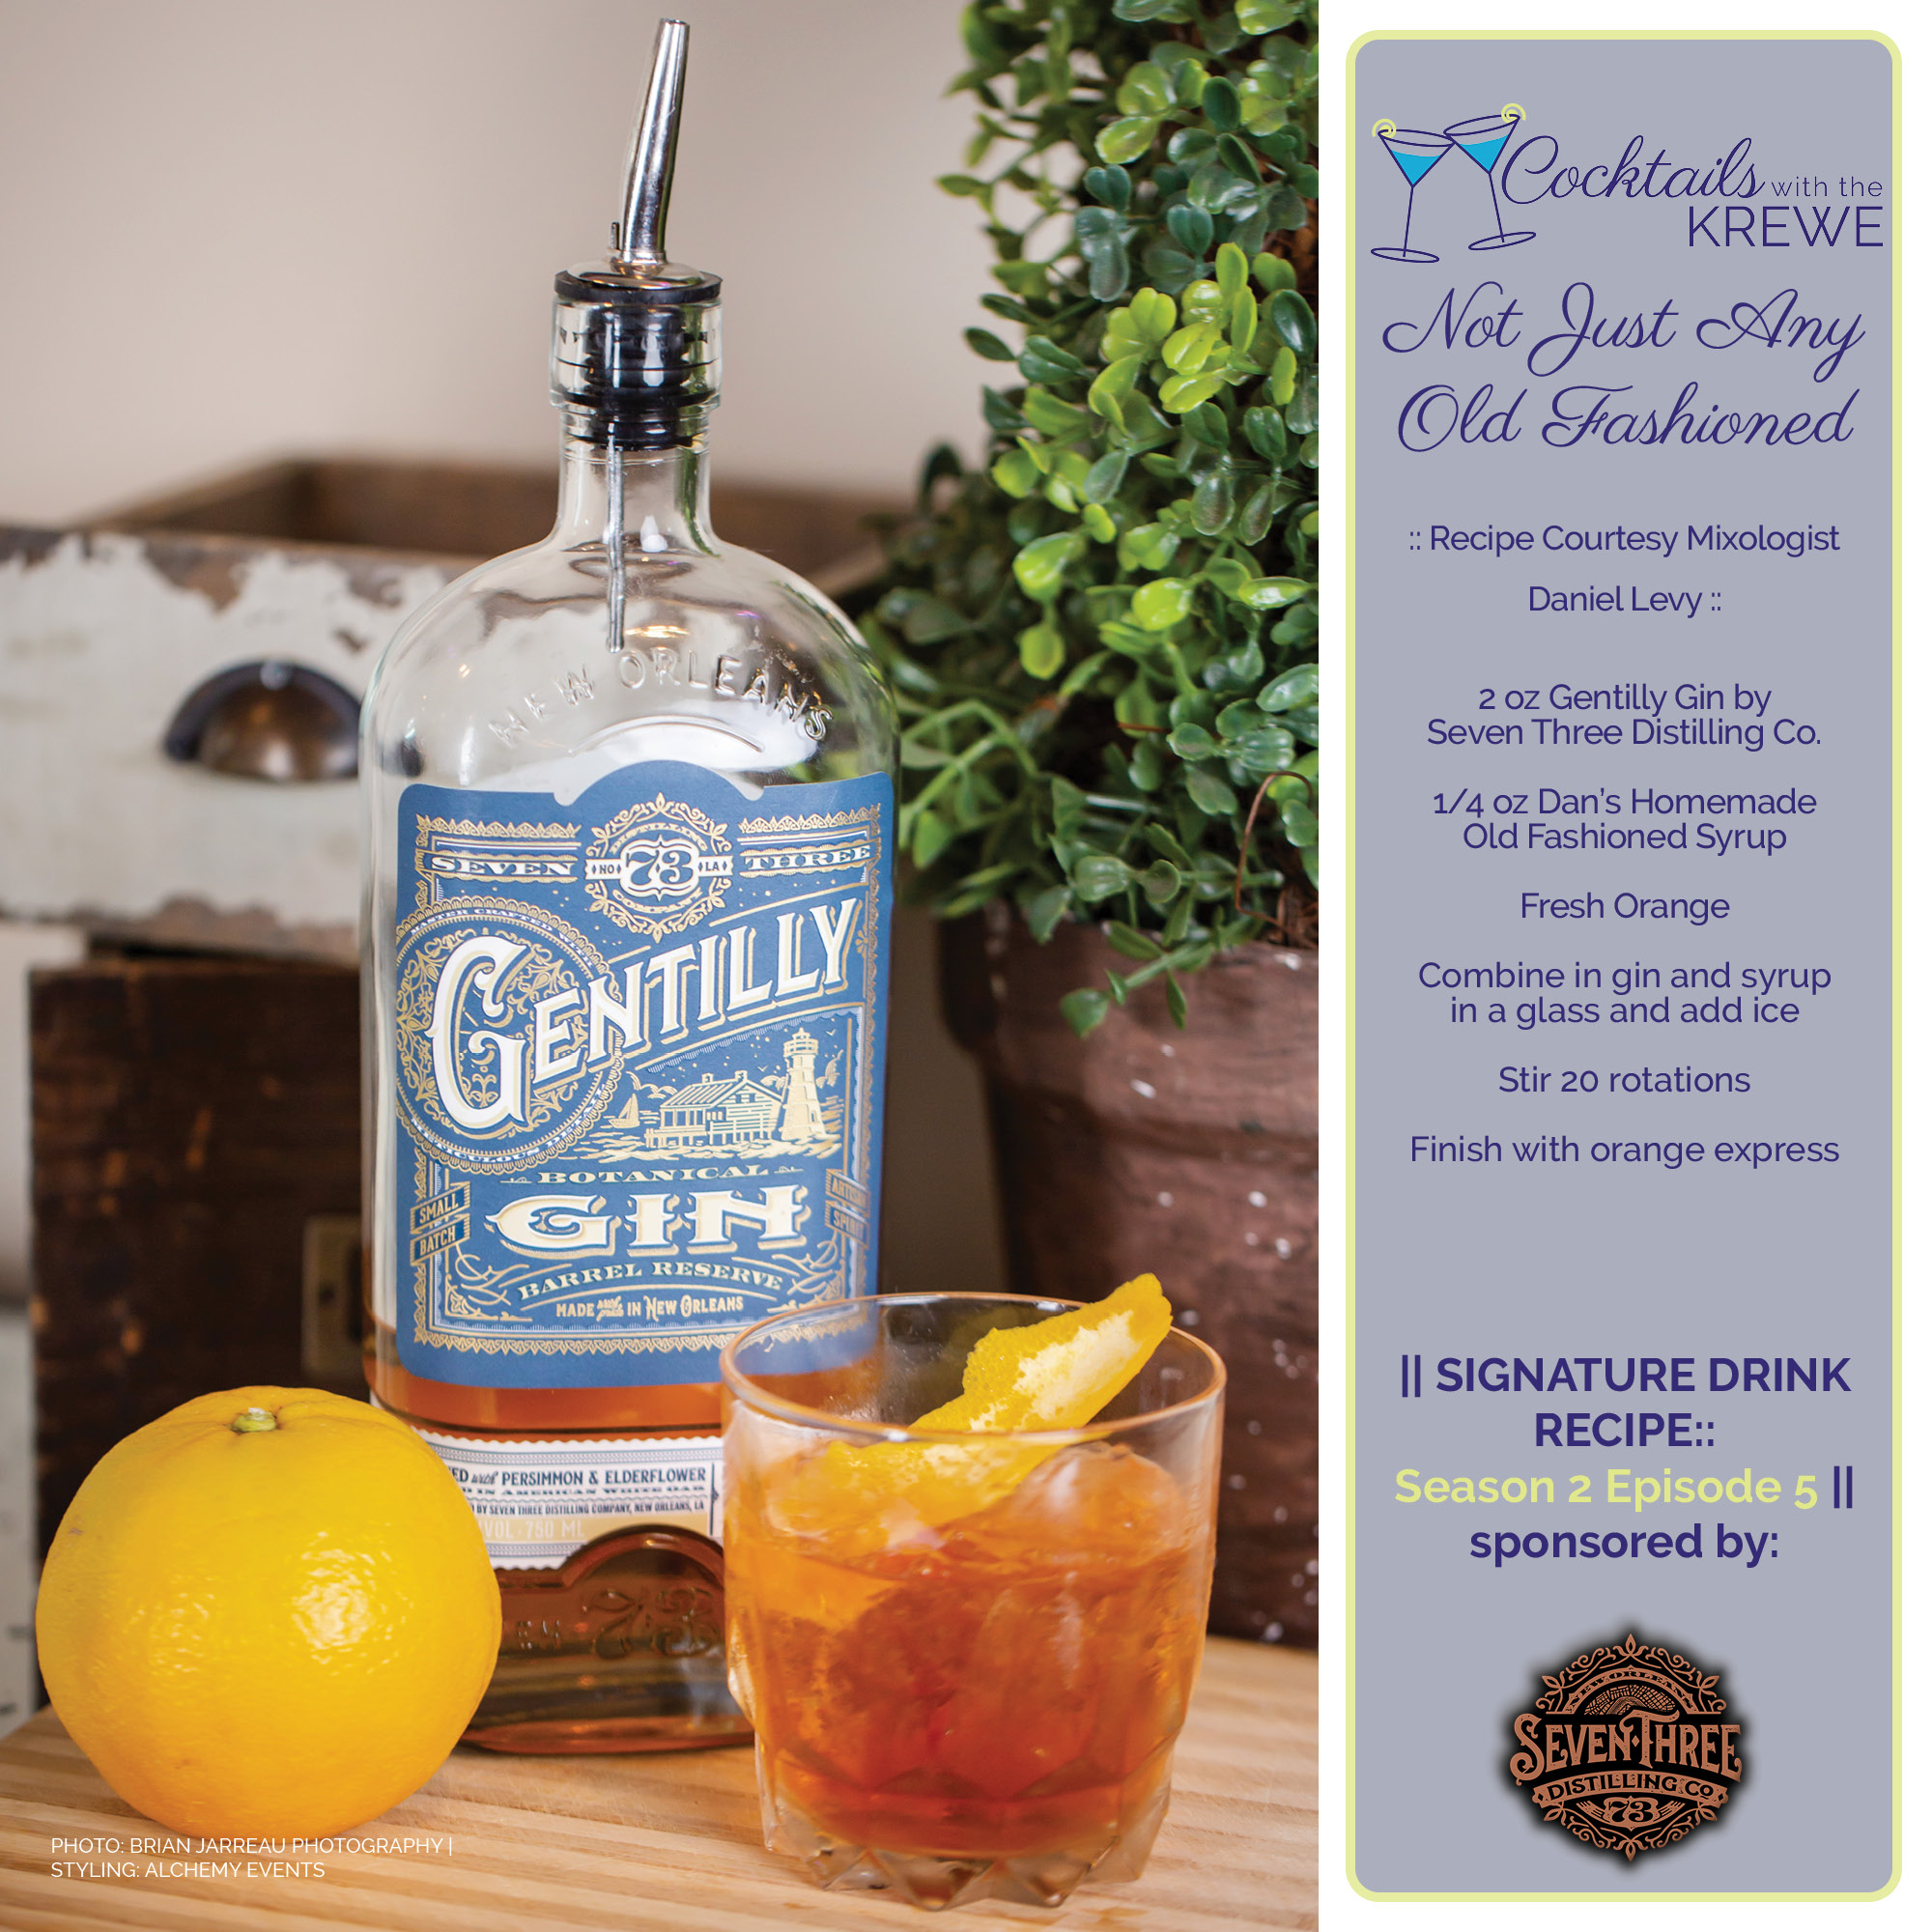 Not Just Any Old Fashioned Recipe featuring Gentilly Gin by Seven Three Distilling Co